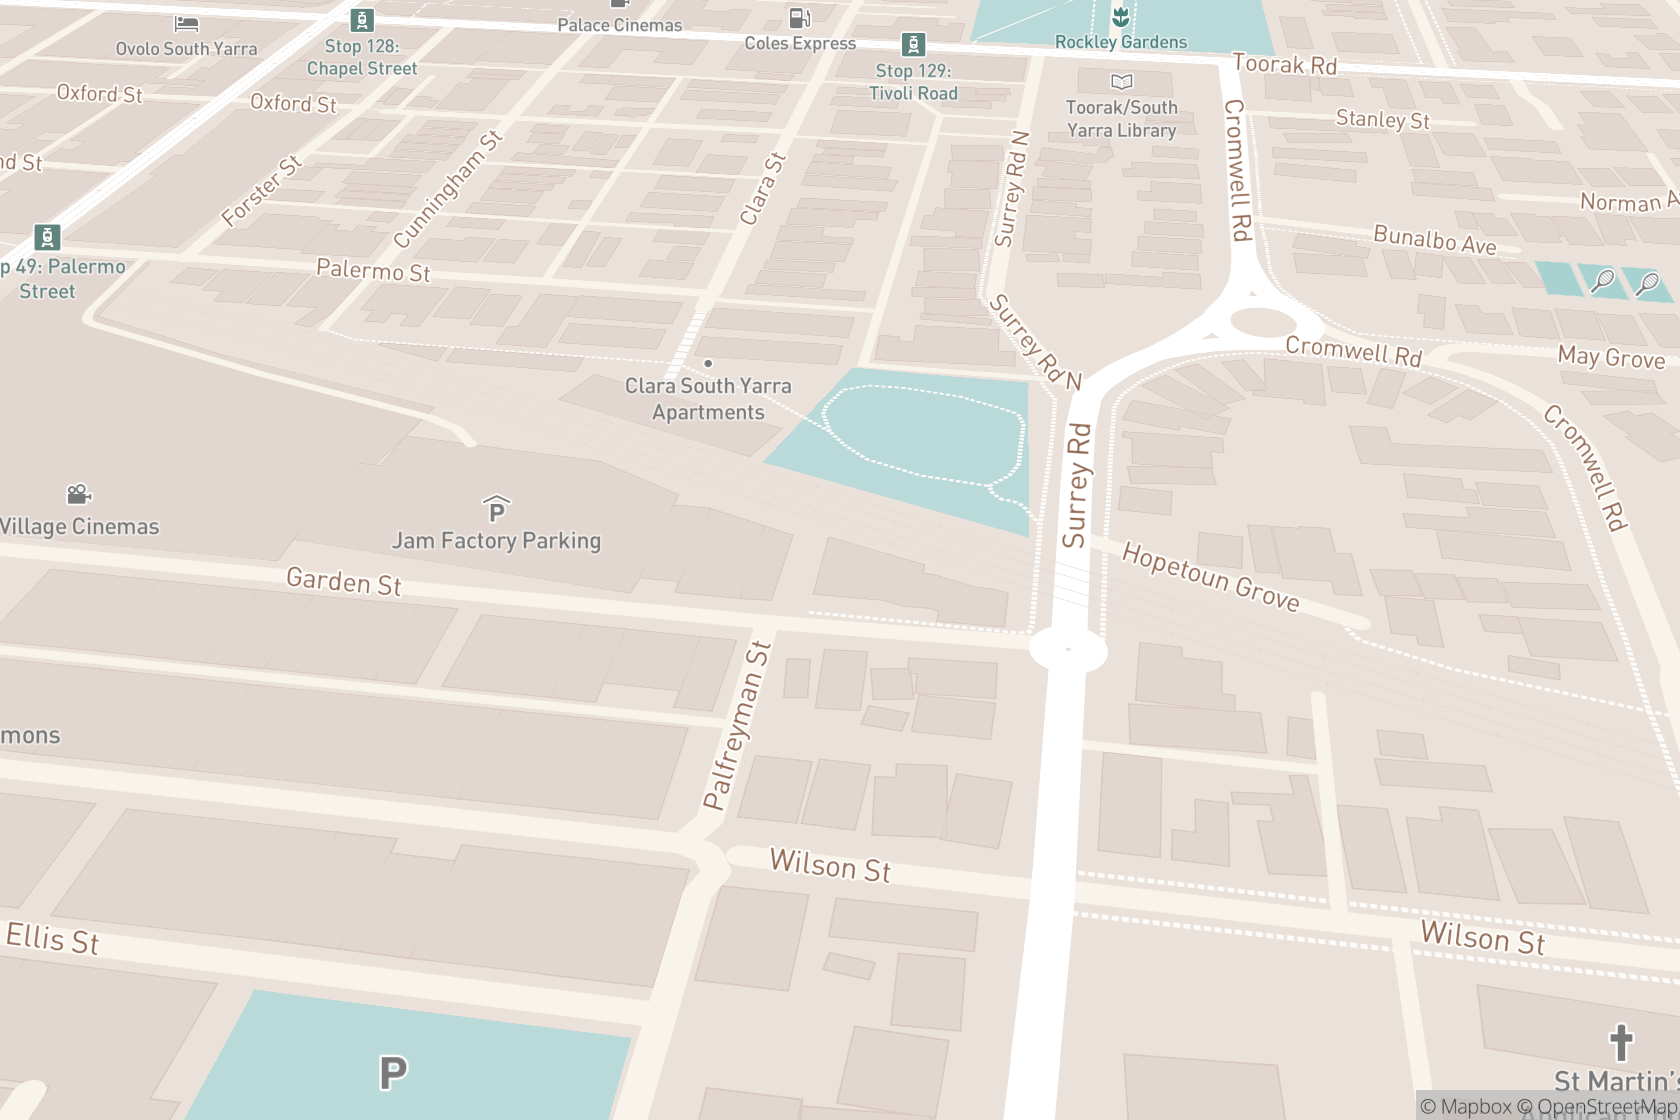 Osteopathic Movement South Yarra map location